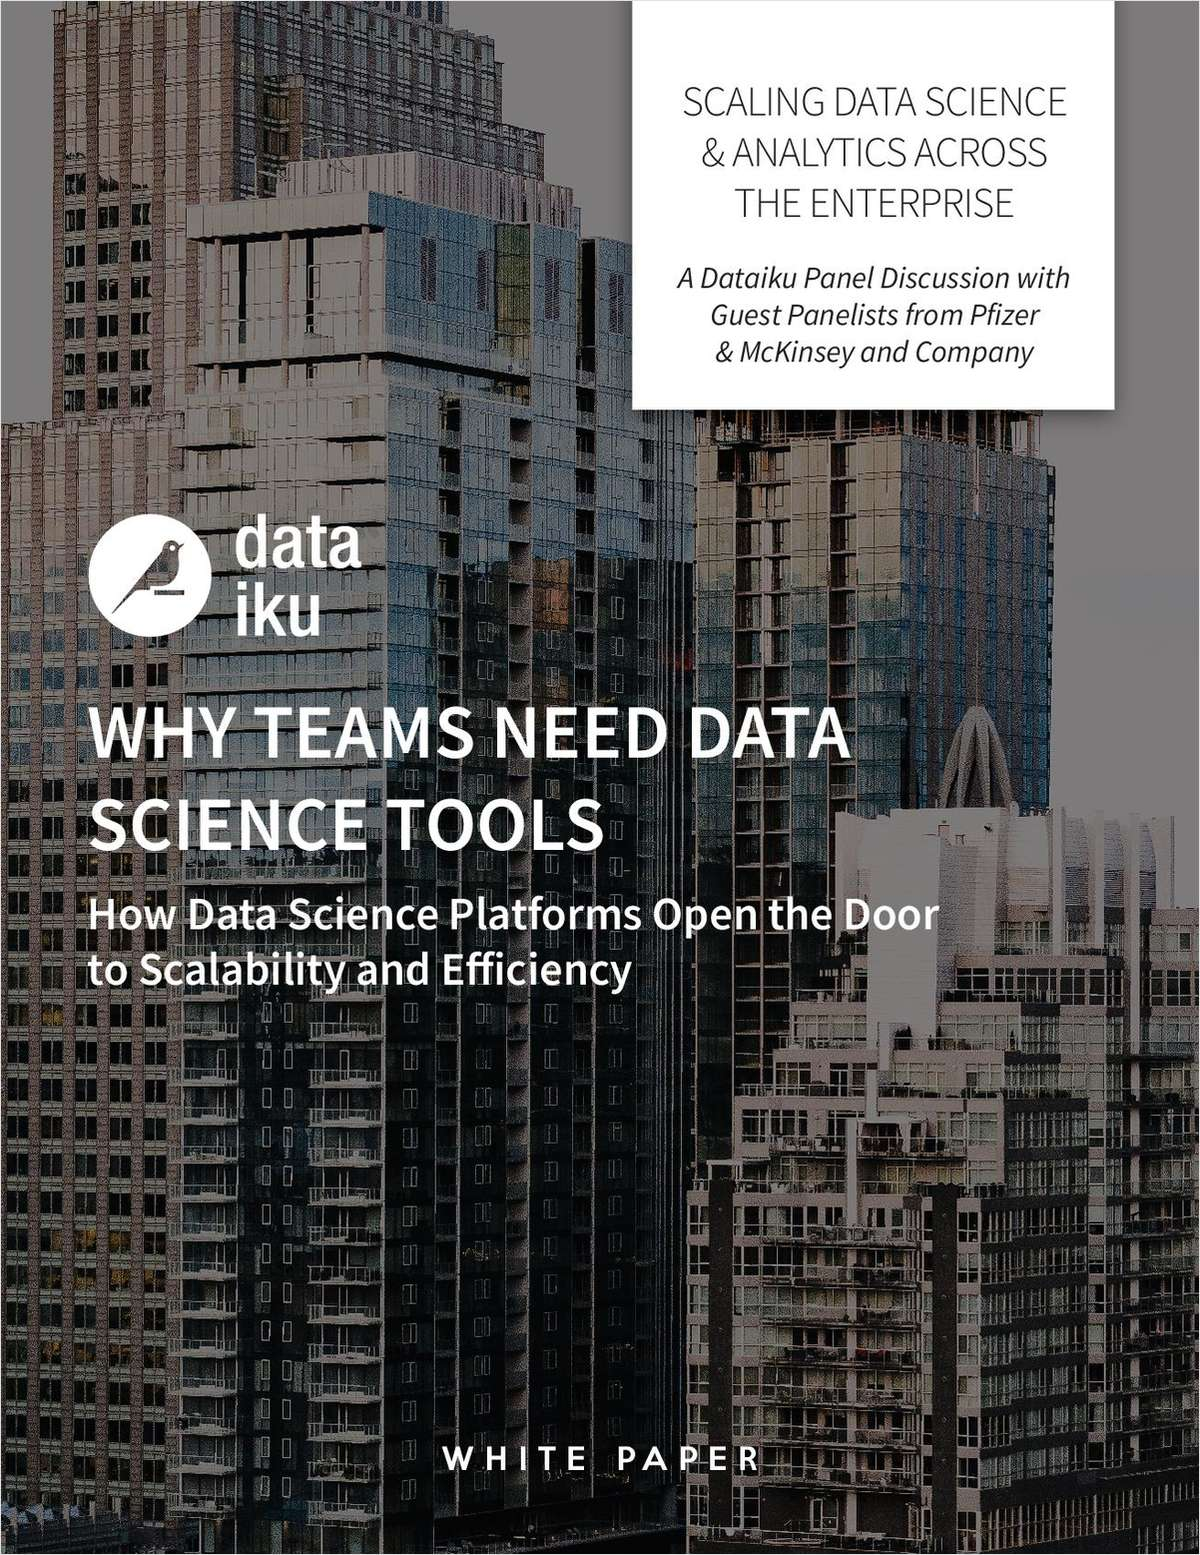 Scaling Data Science And Analytics Across the Enterprise